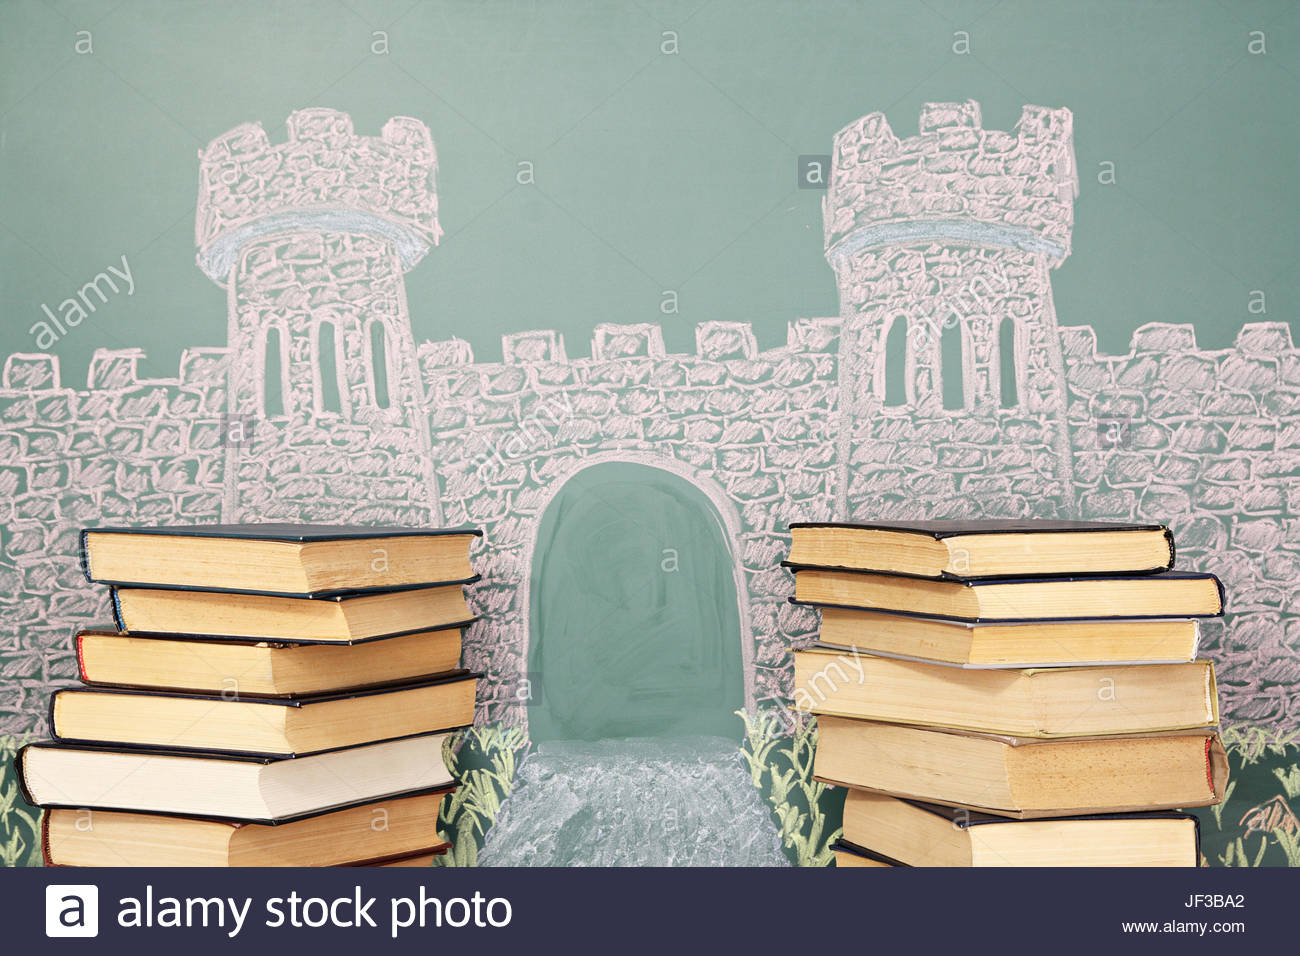 1300x956 Unusual Education Concept. Chalk Drawing Of Castle With Open Gate